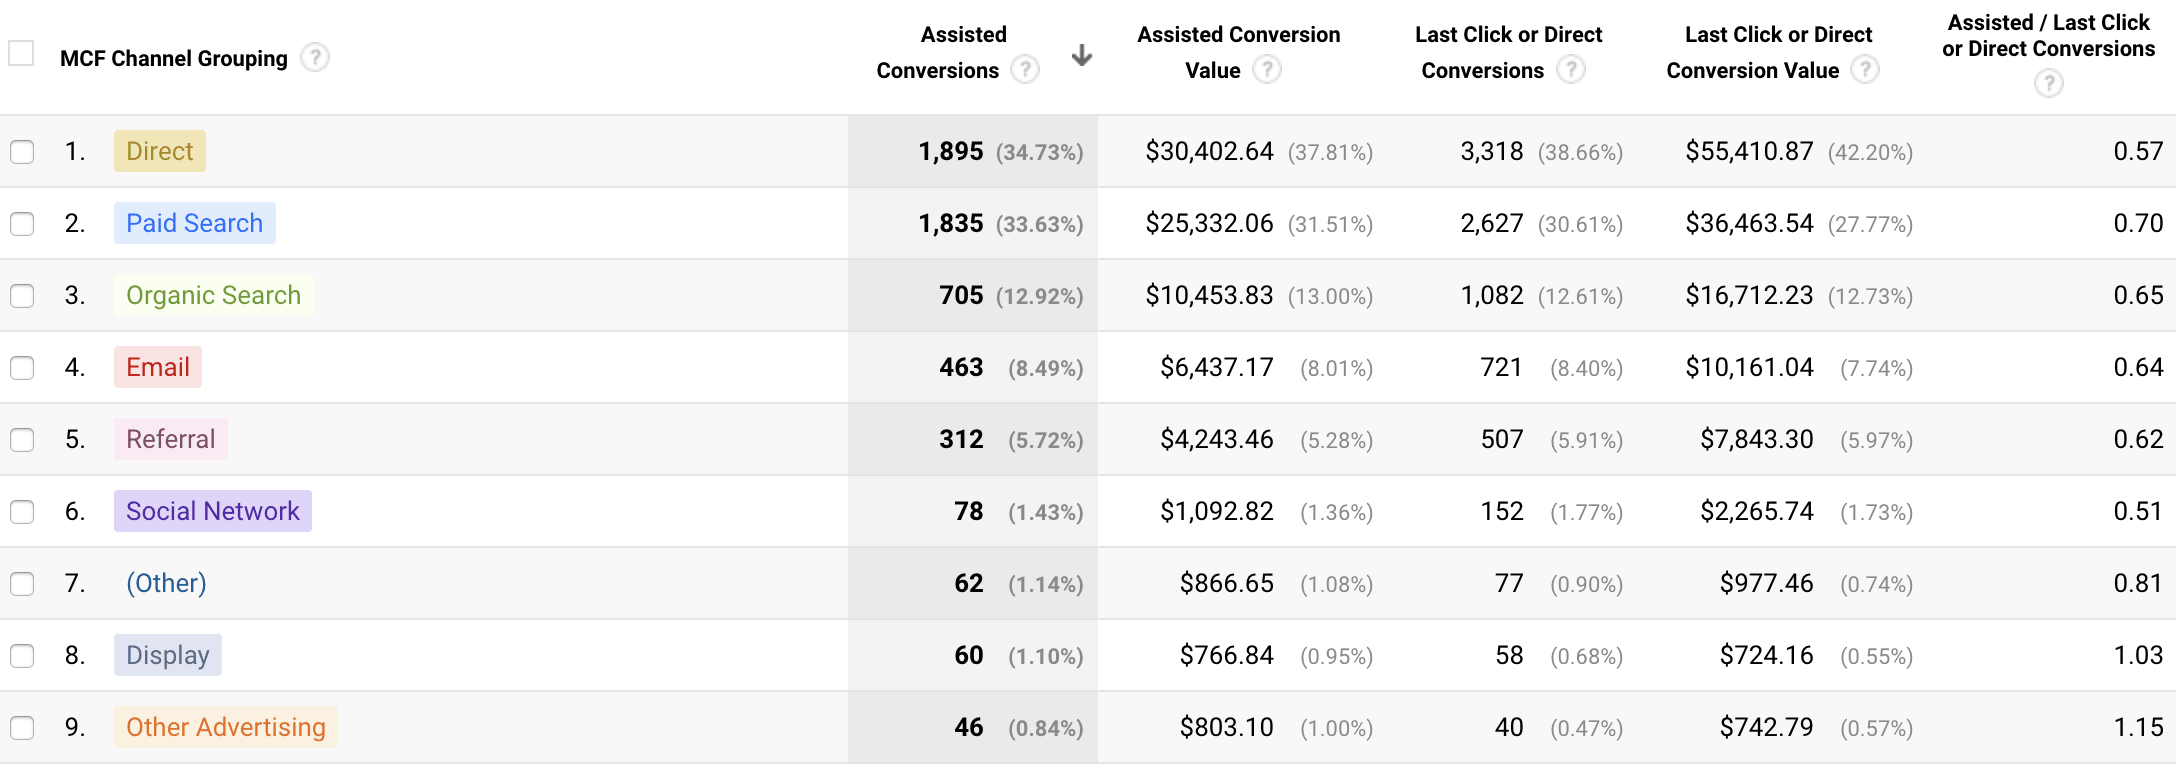 conversiones asistidas por Google Analytics